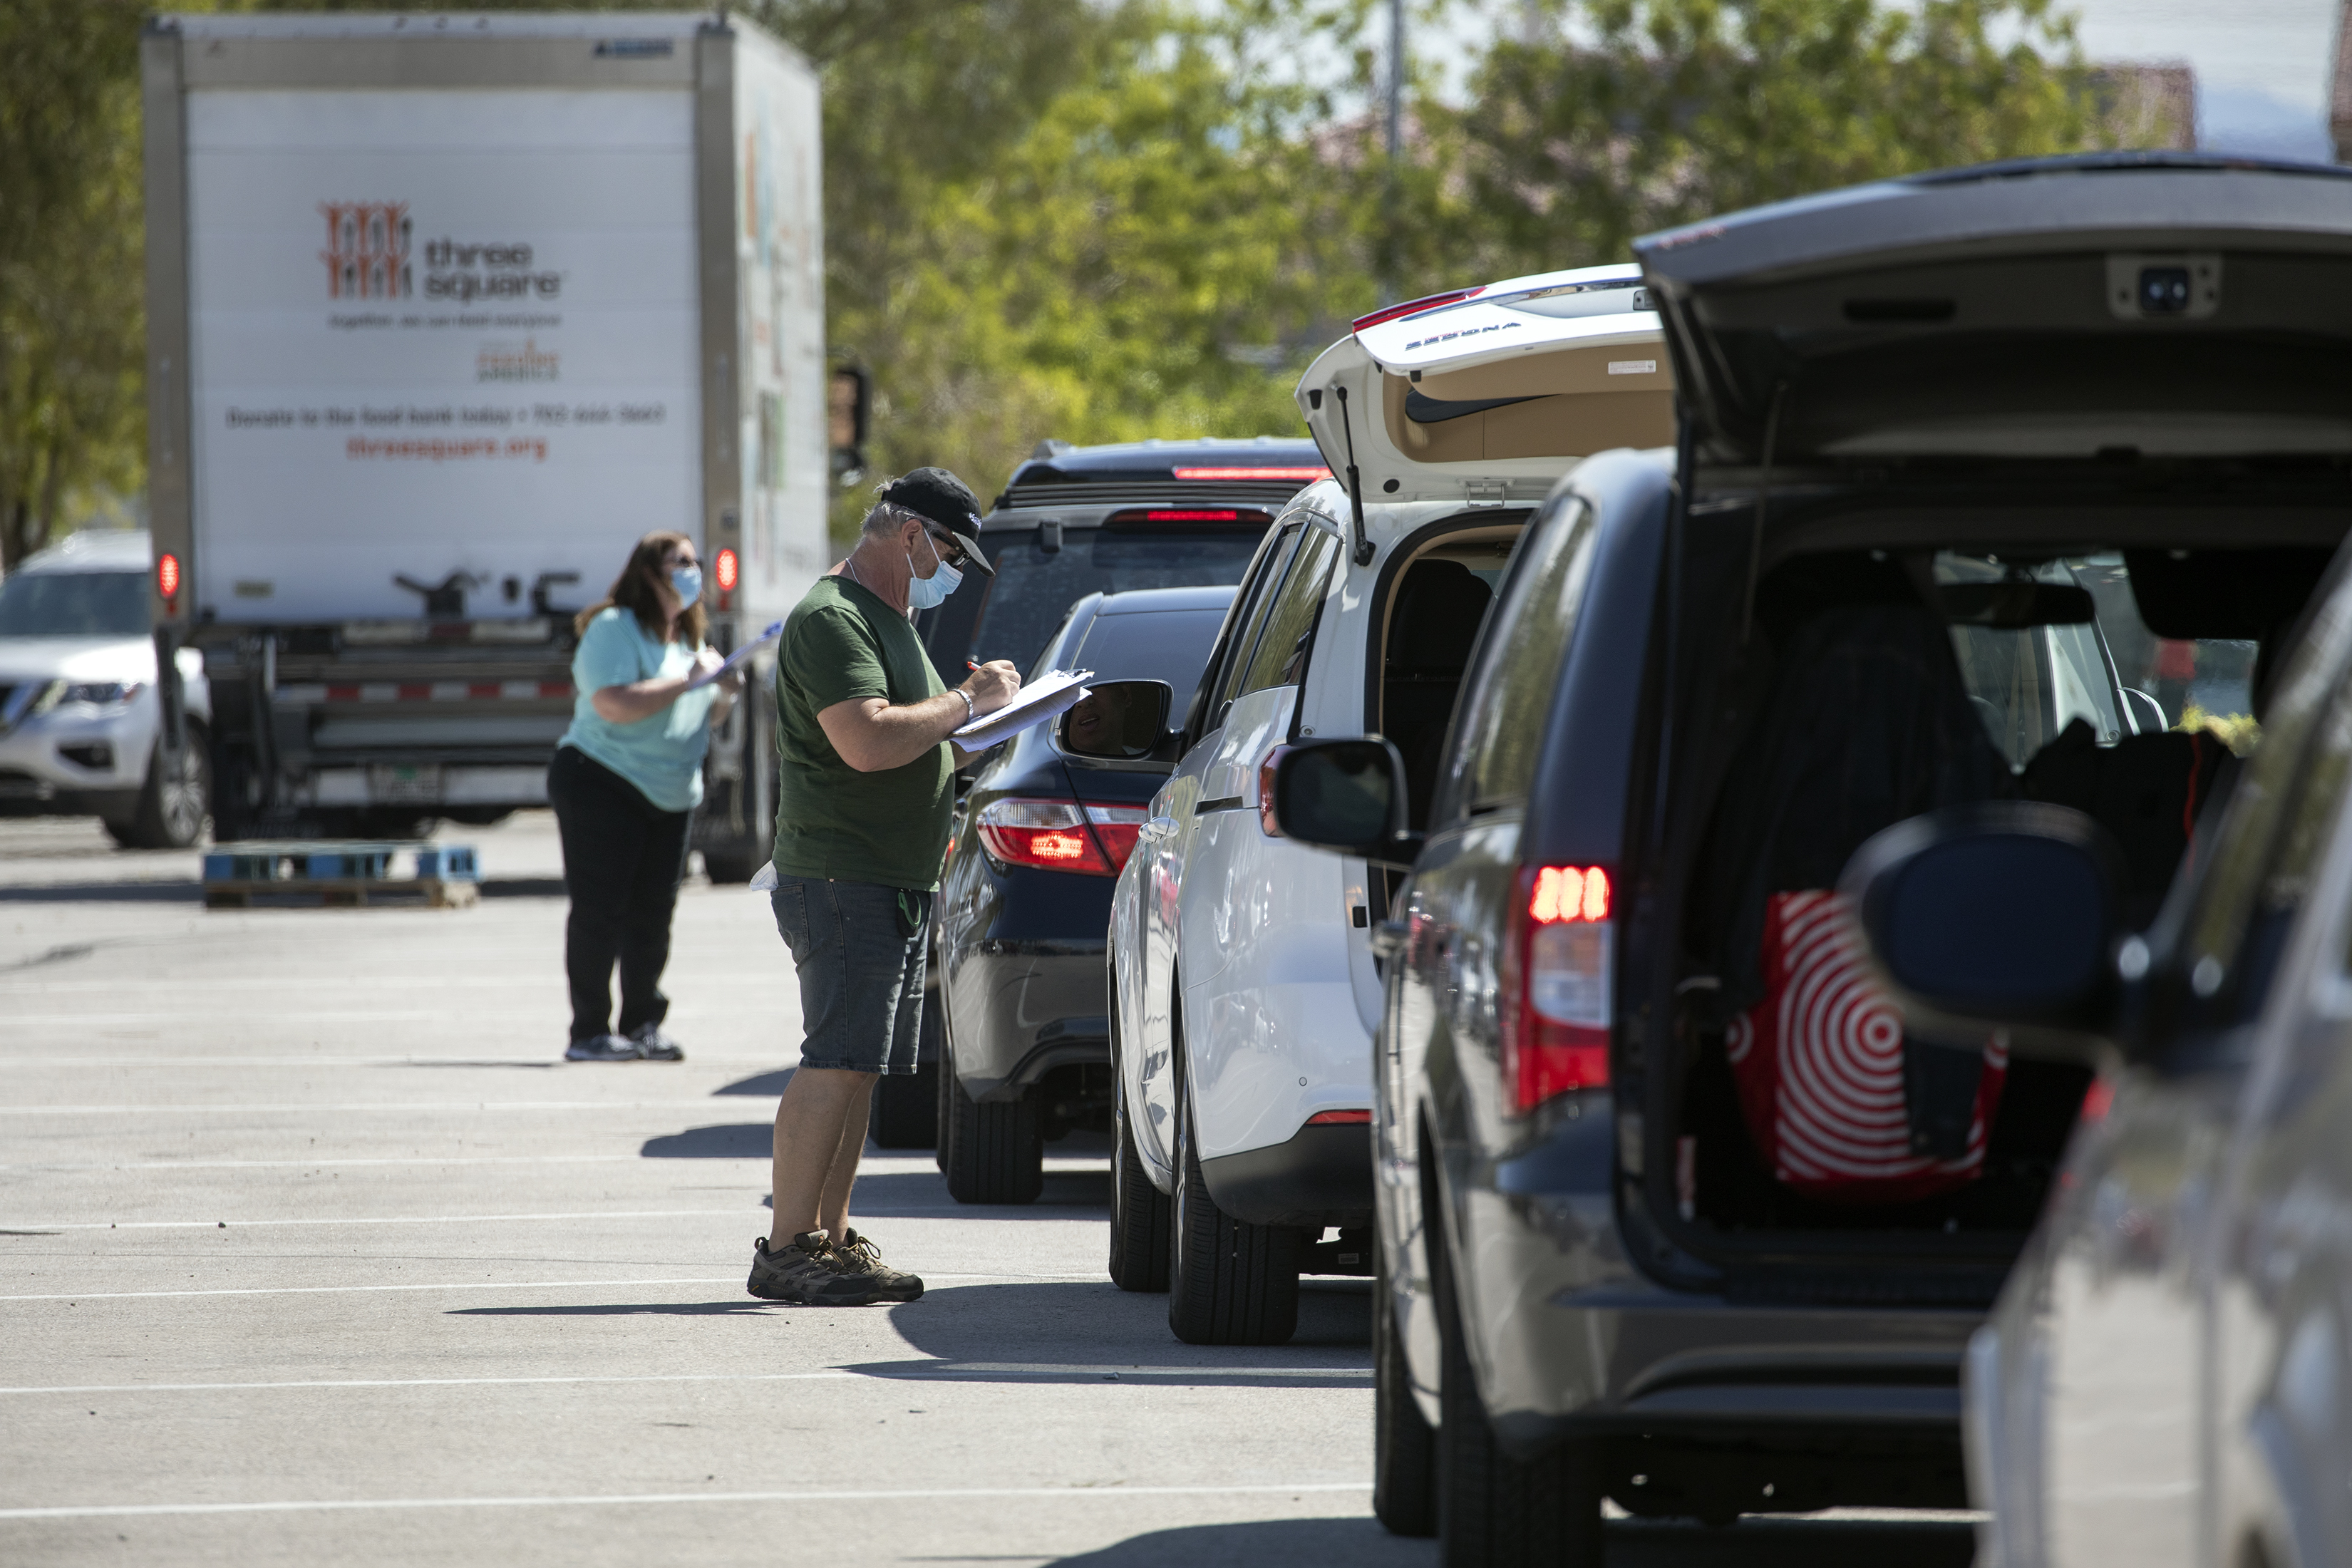 Vehicles line up at a mobile food bank withe their trunks open to receive food